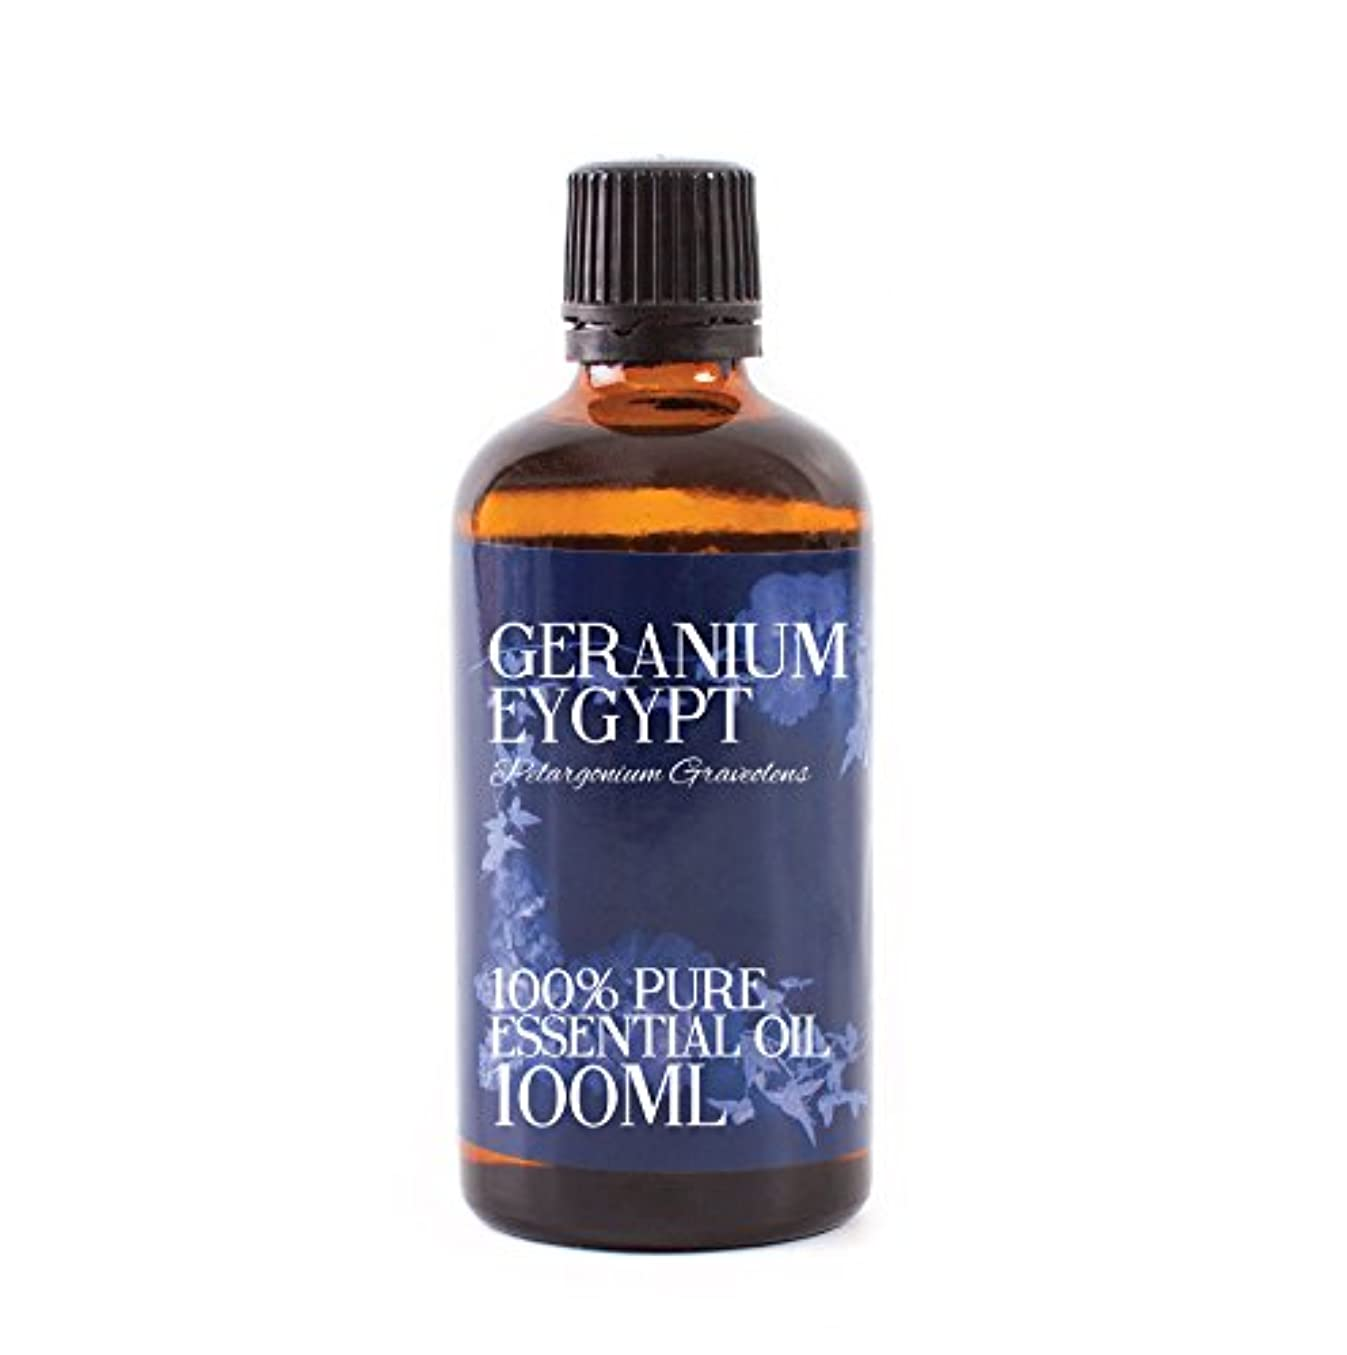 詳細な用心深い司教Mystic Moments | Geranium Egypt Essential Oil - 100ml - 100% Pure